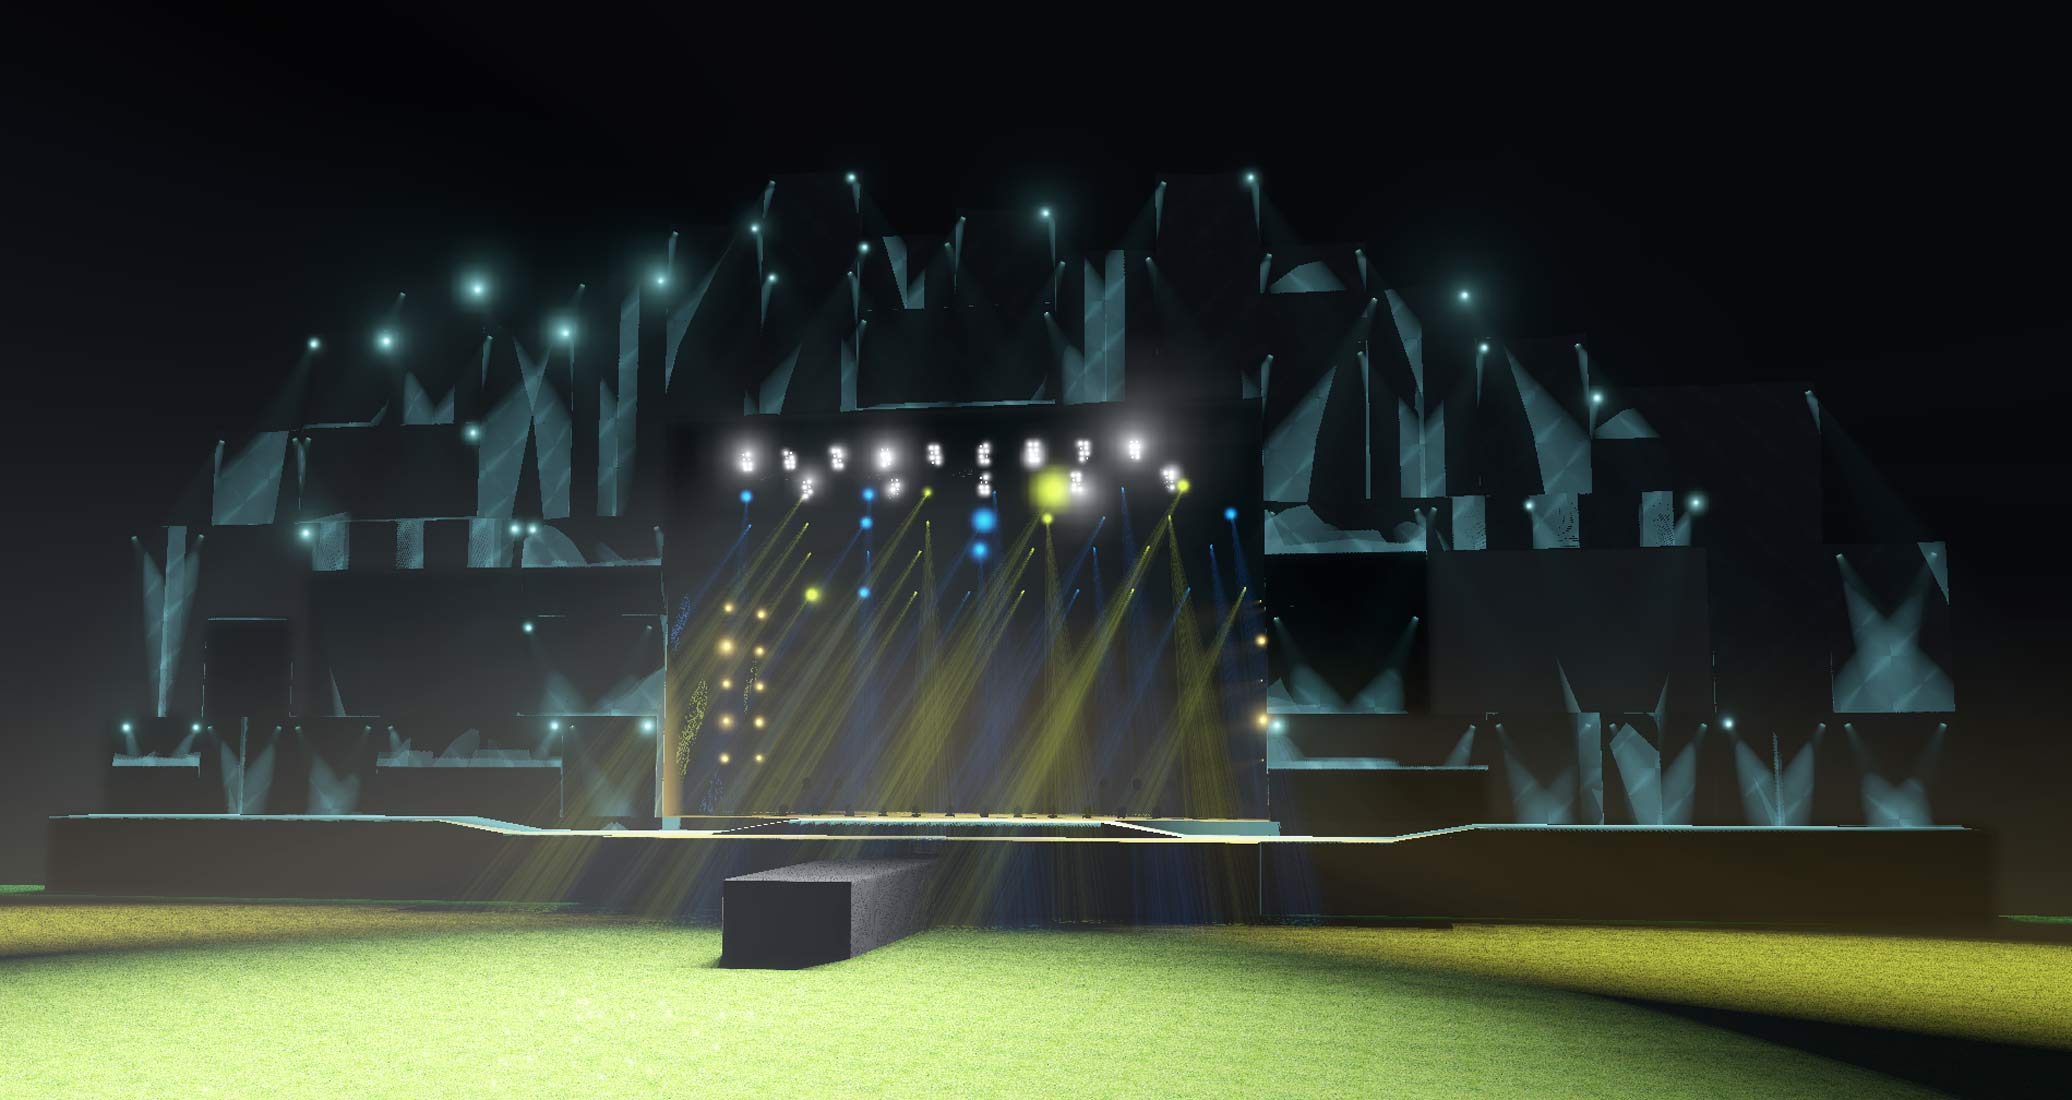 ROCK IN RIO LISBON Stage Previsualization | DESIGN BY WOODROFFE BASSETT